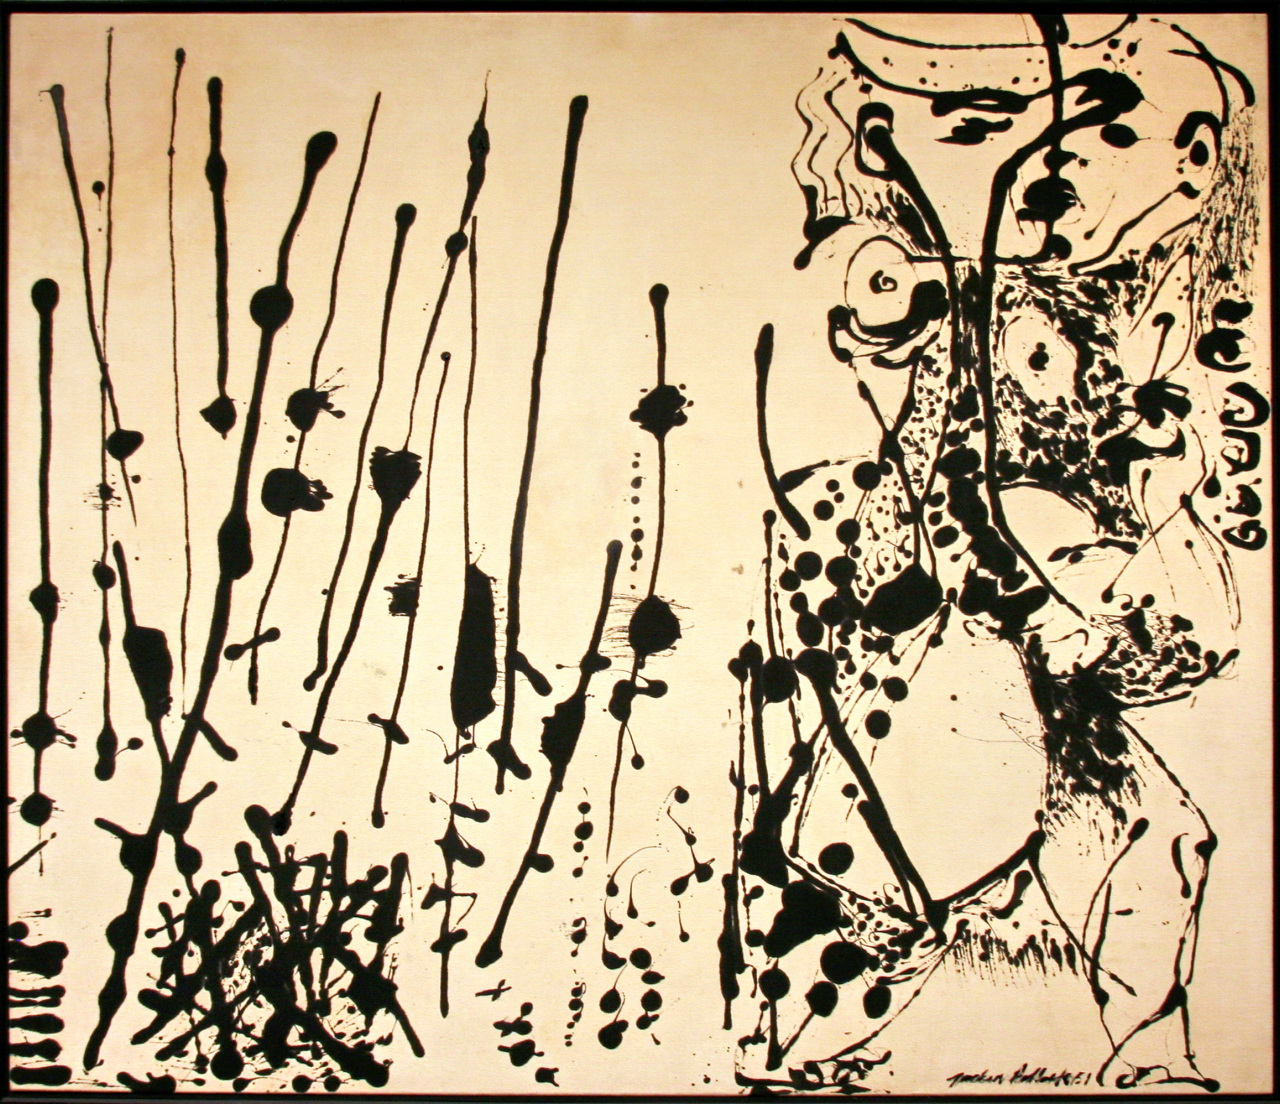 Last chance to see Pollock's black paintings at the DMA.